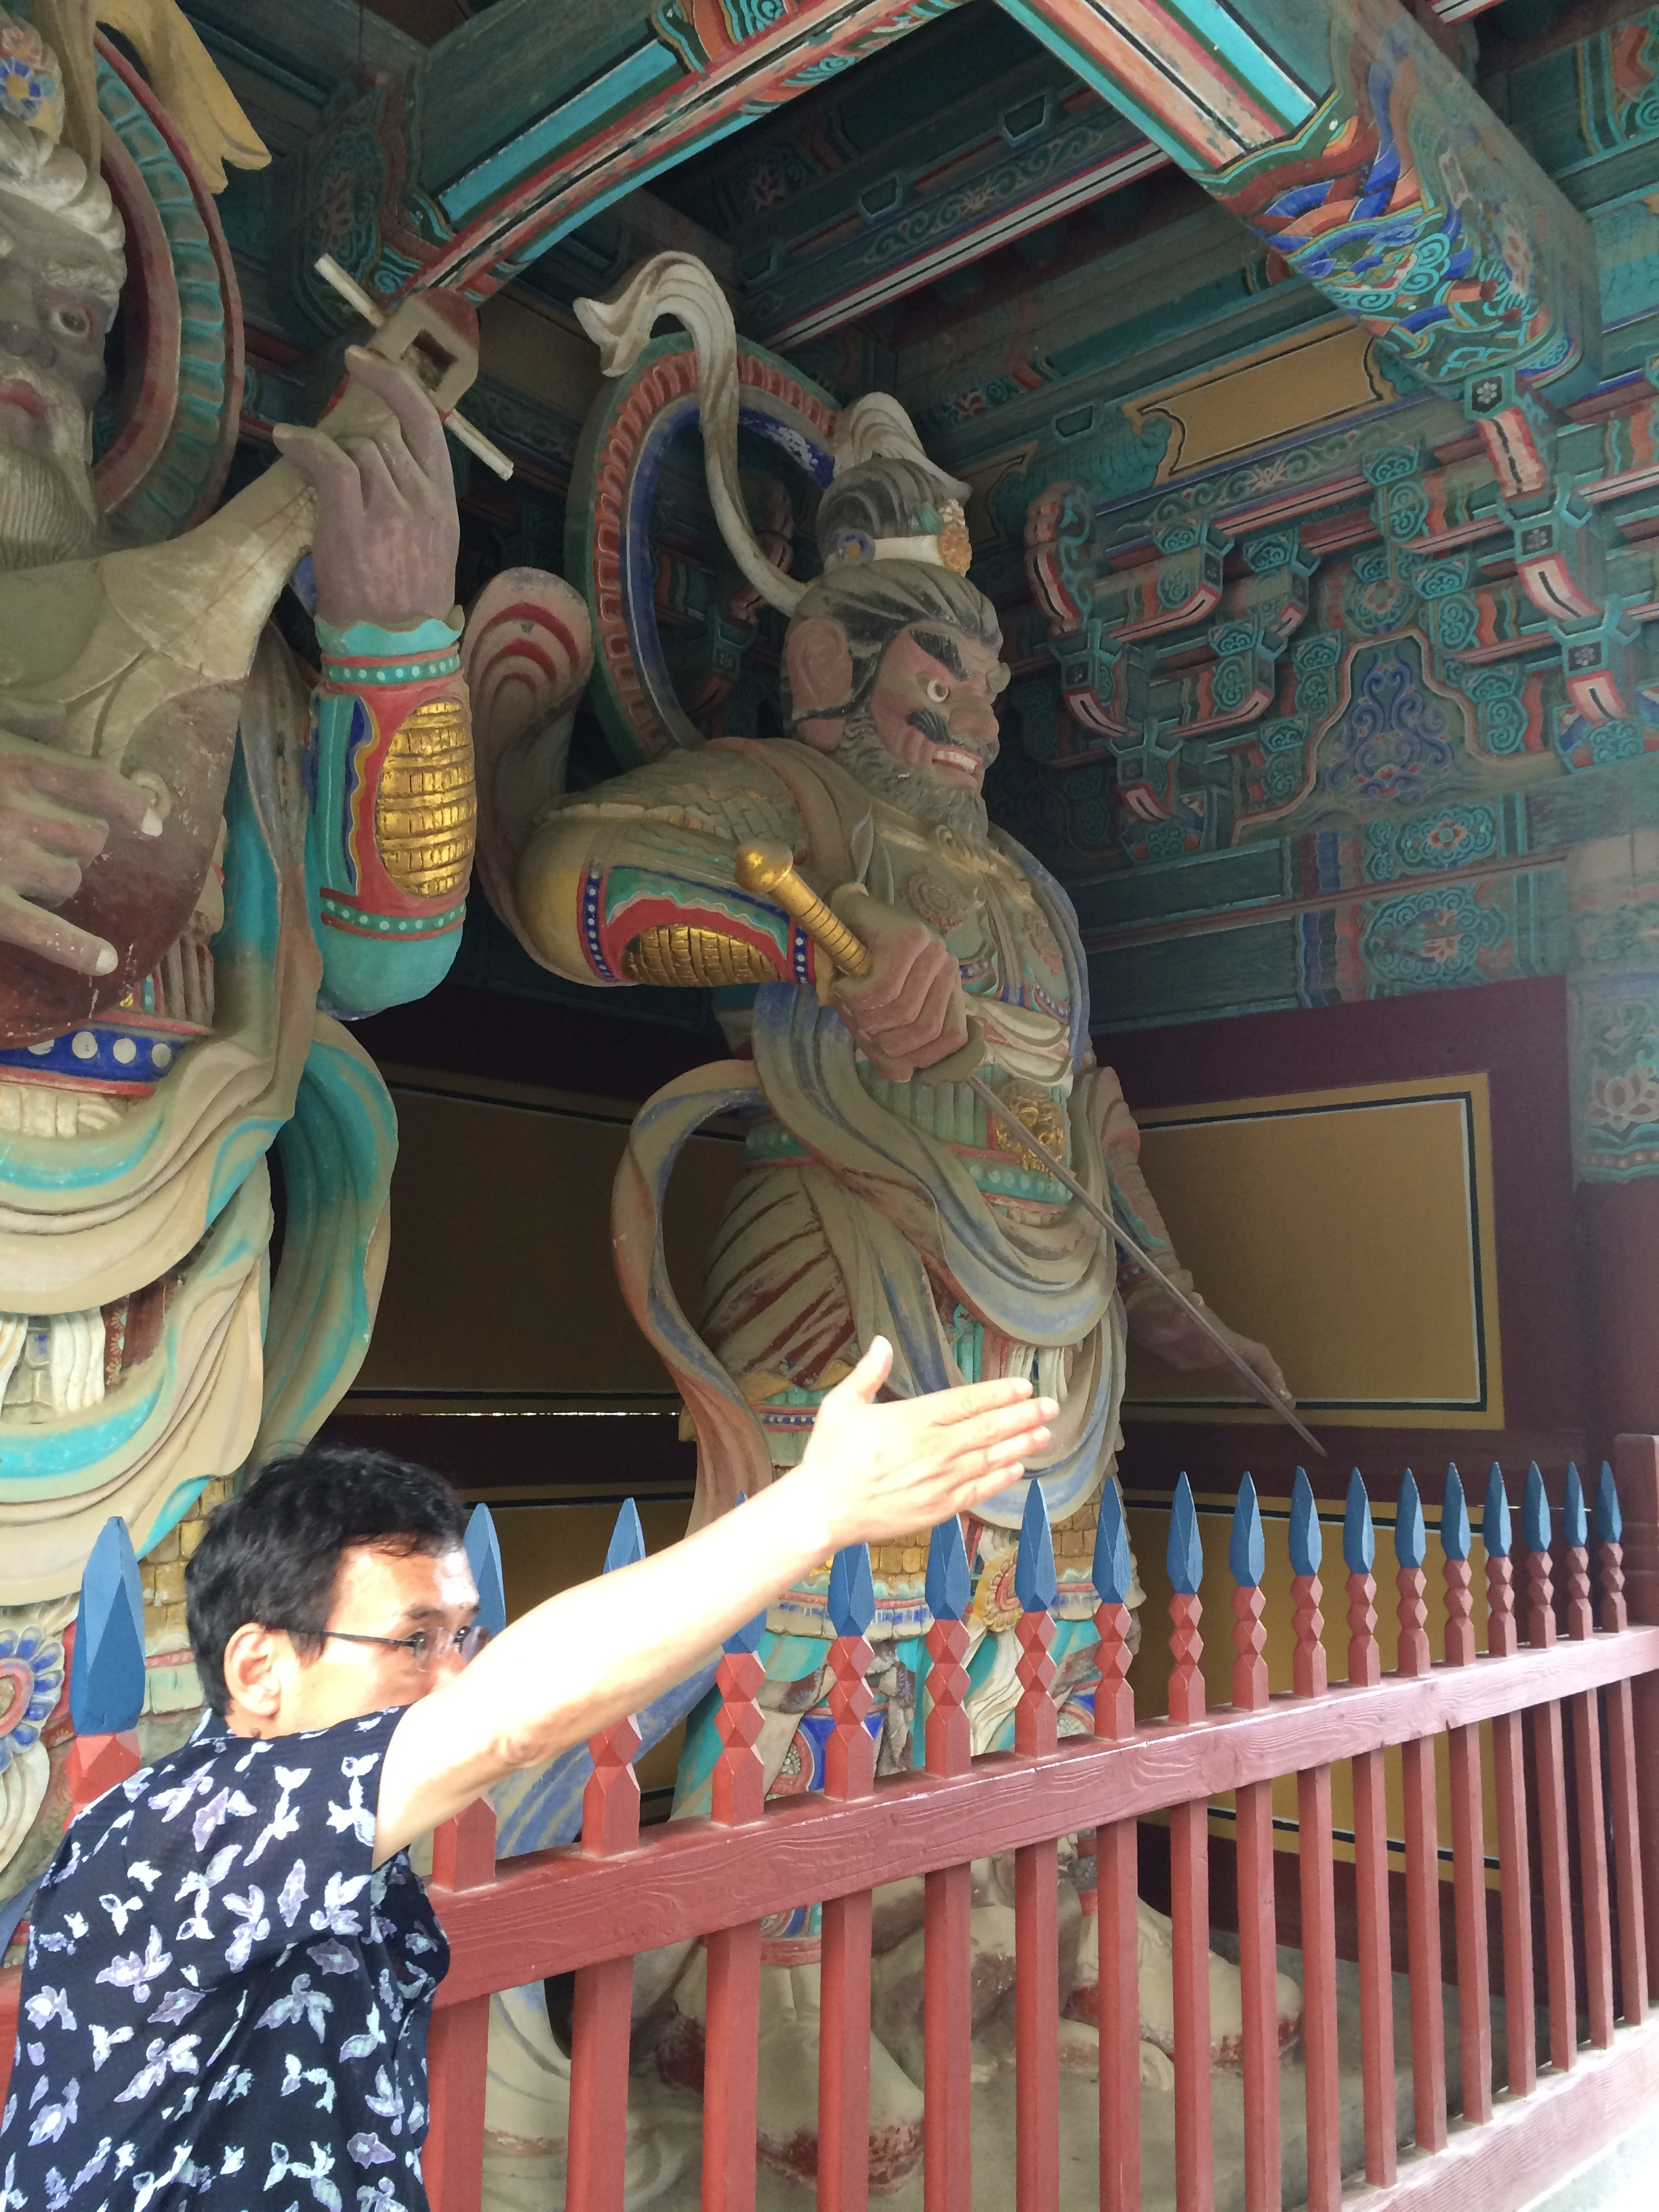 Tour guide Sam Gim stands before towering, colorful statues of guardian gods in a Korean Buddhist temple. Dhṛtarāṣṭra/Jiguk's on the left playing his lute, Virūḍhaka/Jeungjang brandishing his sword on the right.